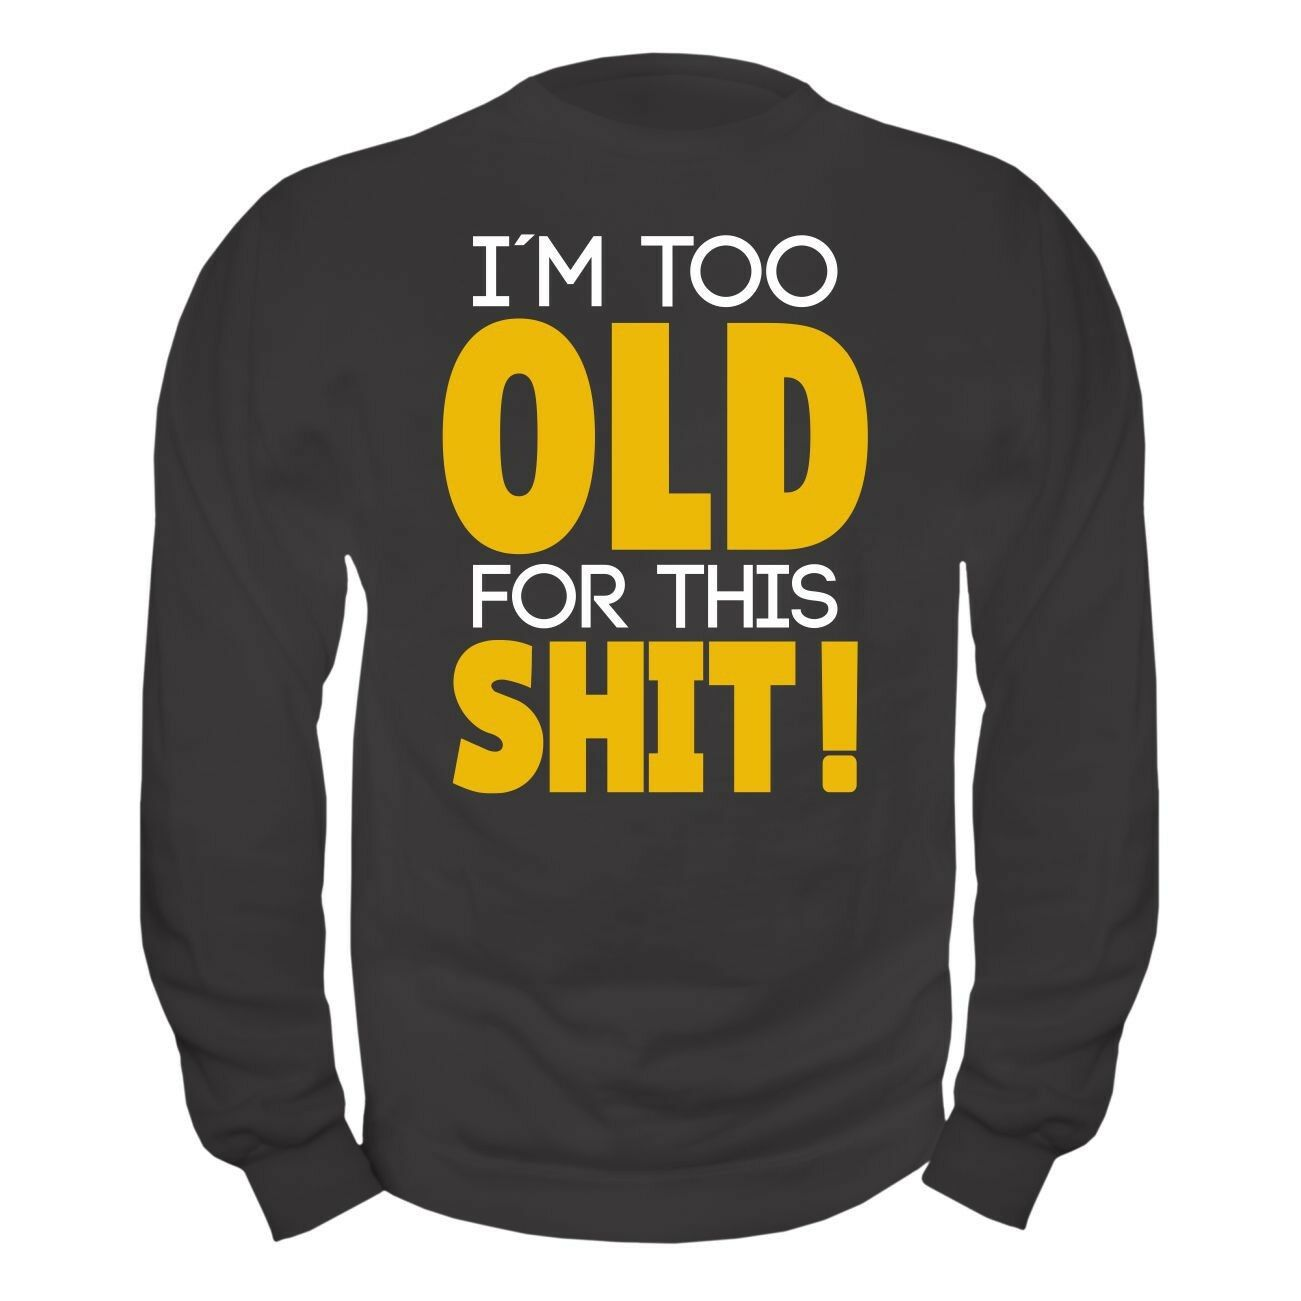 Pullover Sweatshirt I'm too OLD for this SHIT Fun Männer Vater Papa Rentner Kerl